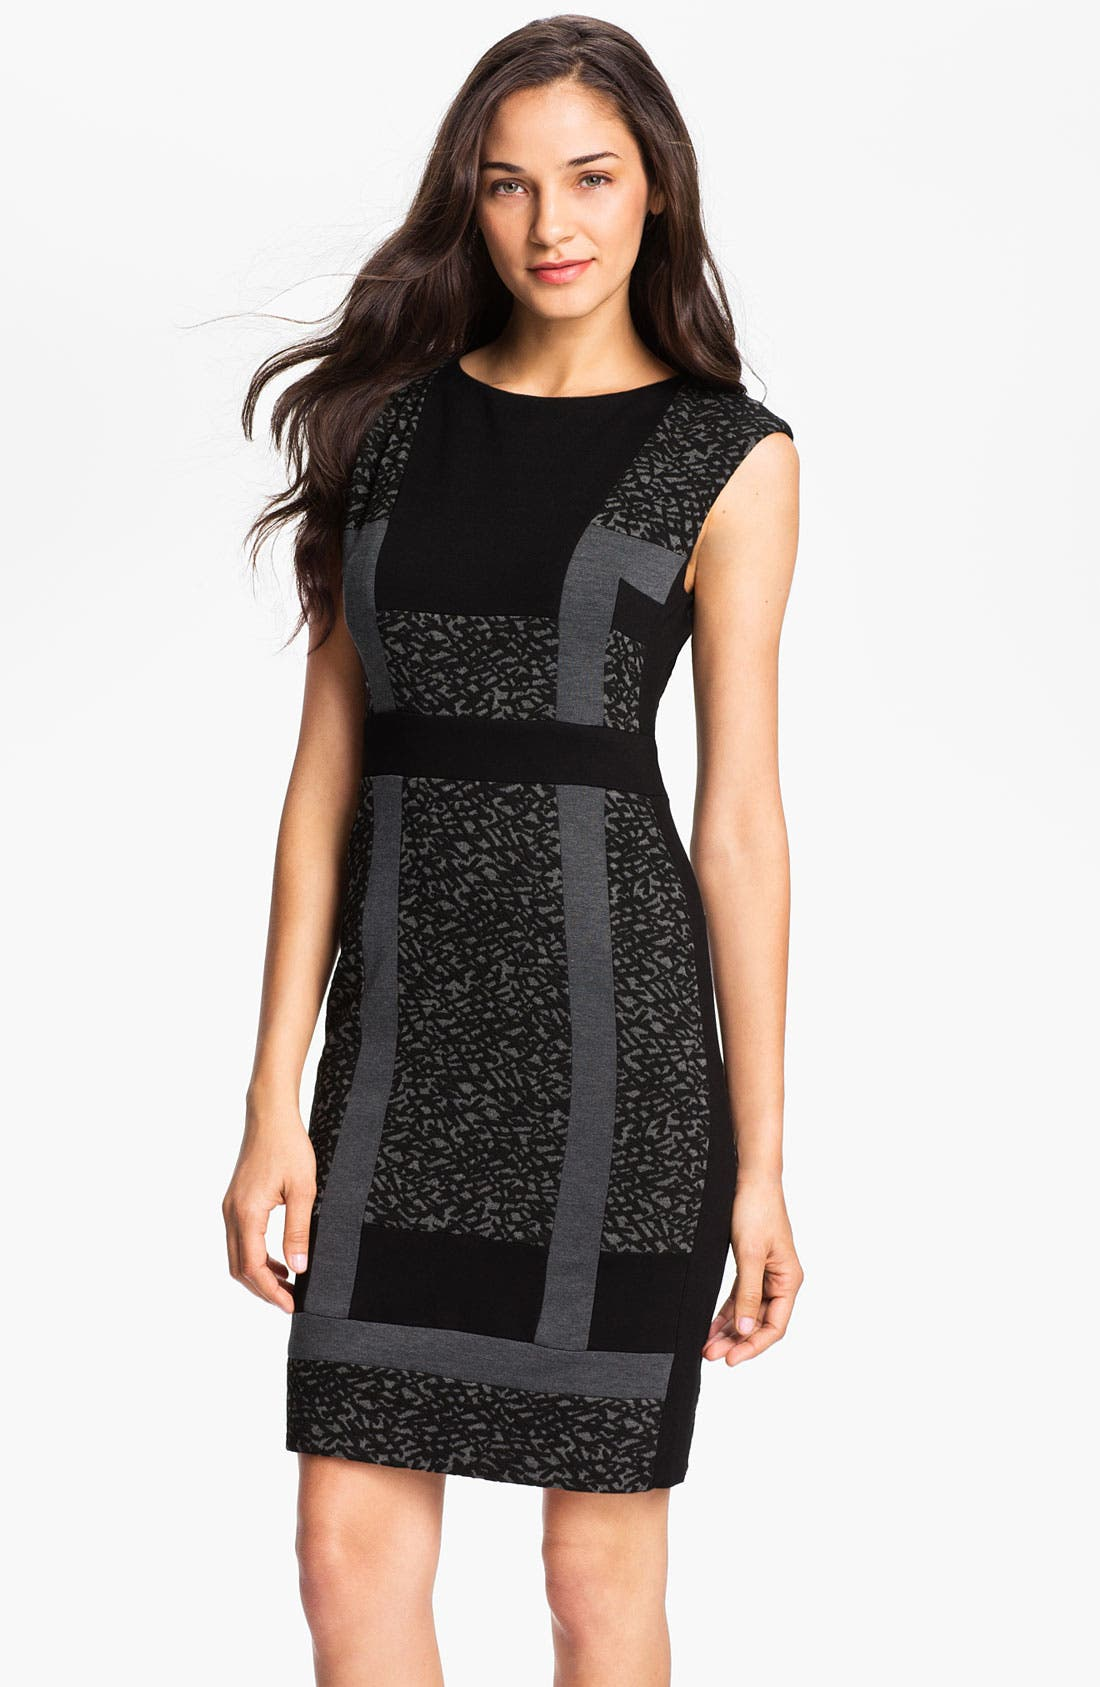 Alternate Image 1 Selected - Maggy London Graphic Print Ponte Knit Sheath Dress